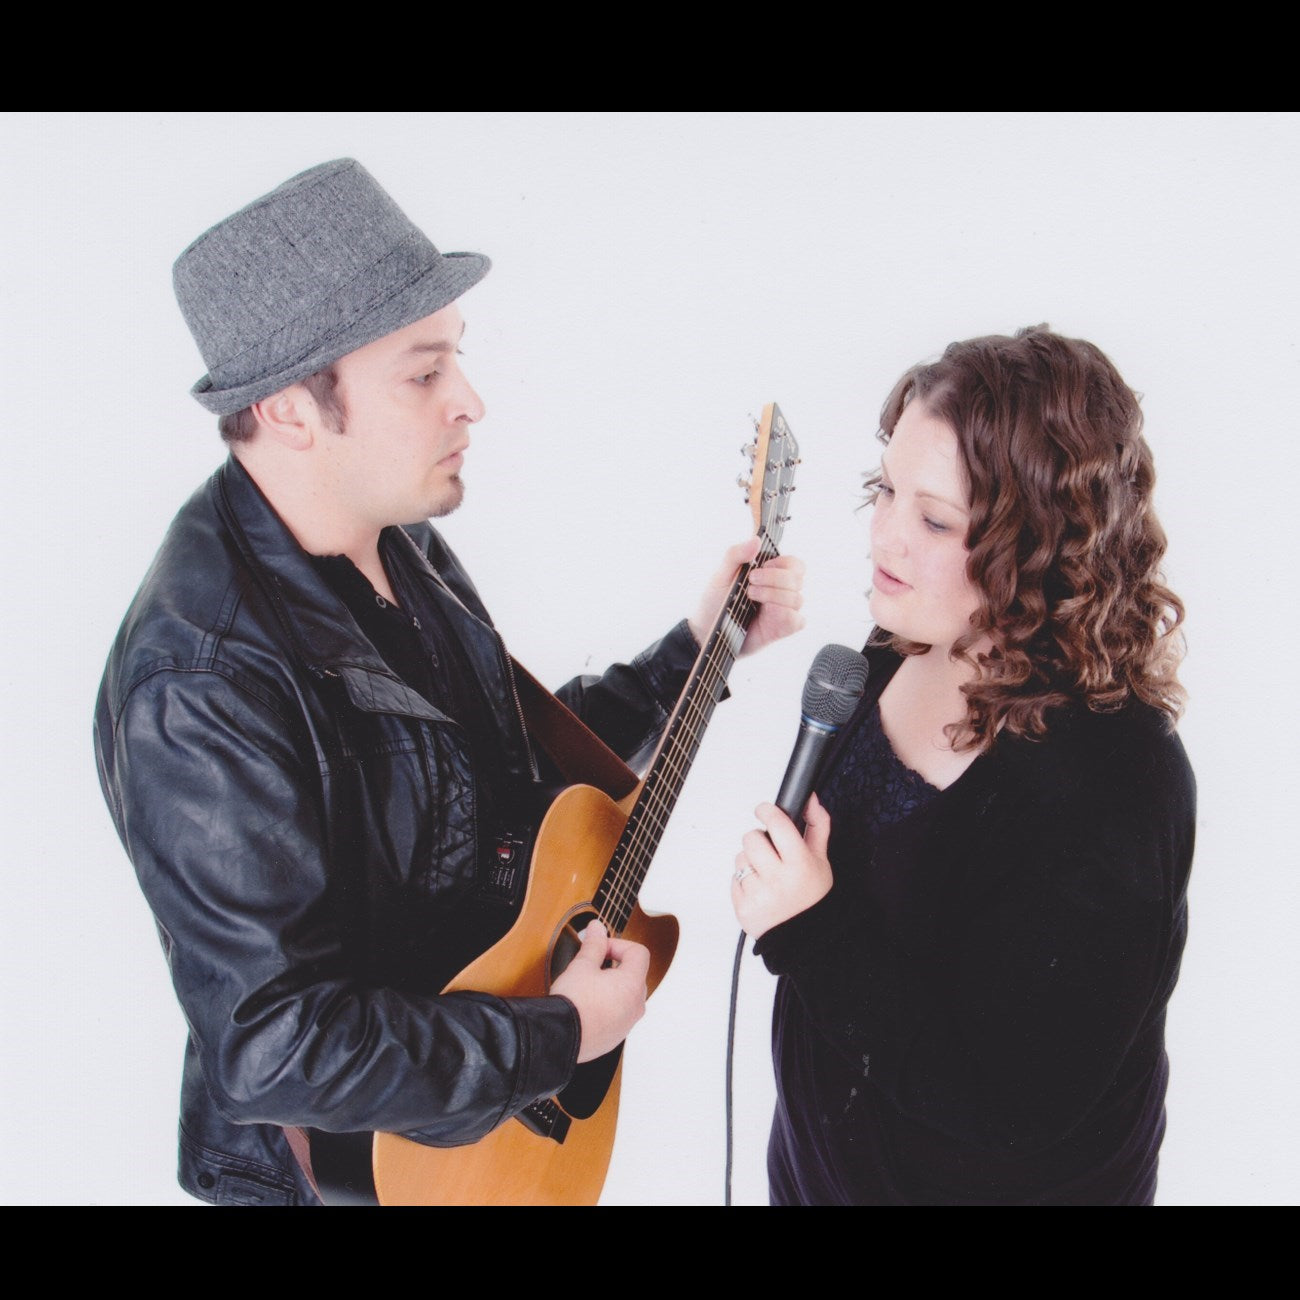 Just A Dream - Nelly (Crowley Brothers cover) - YouTube